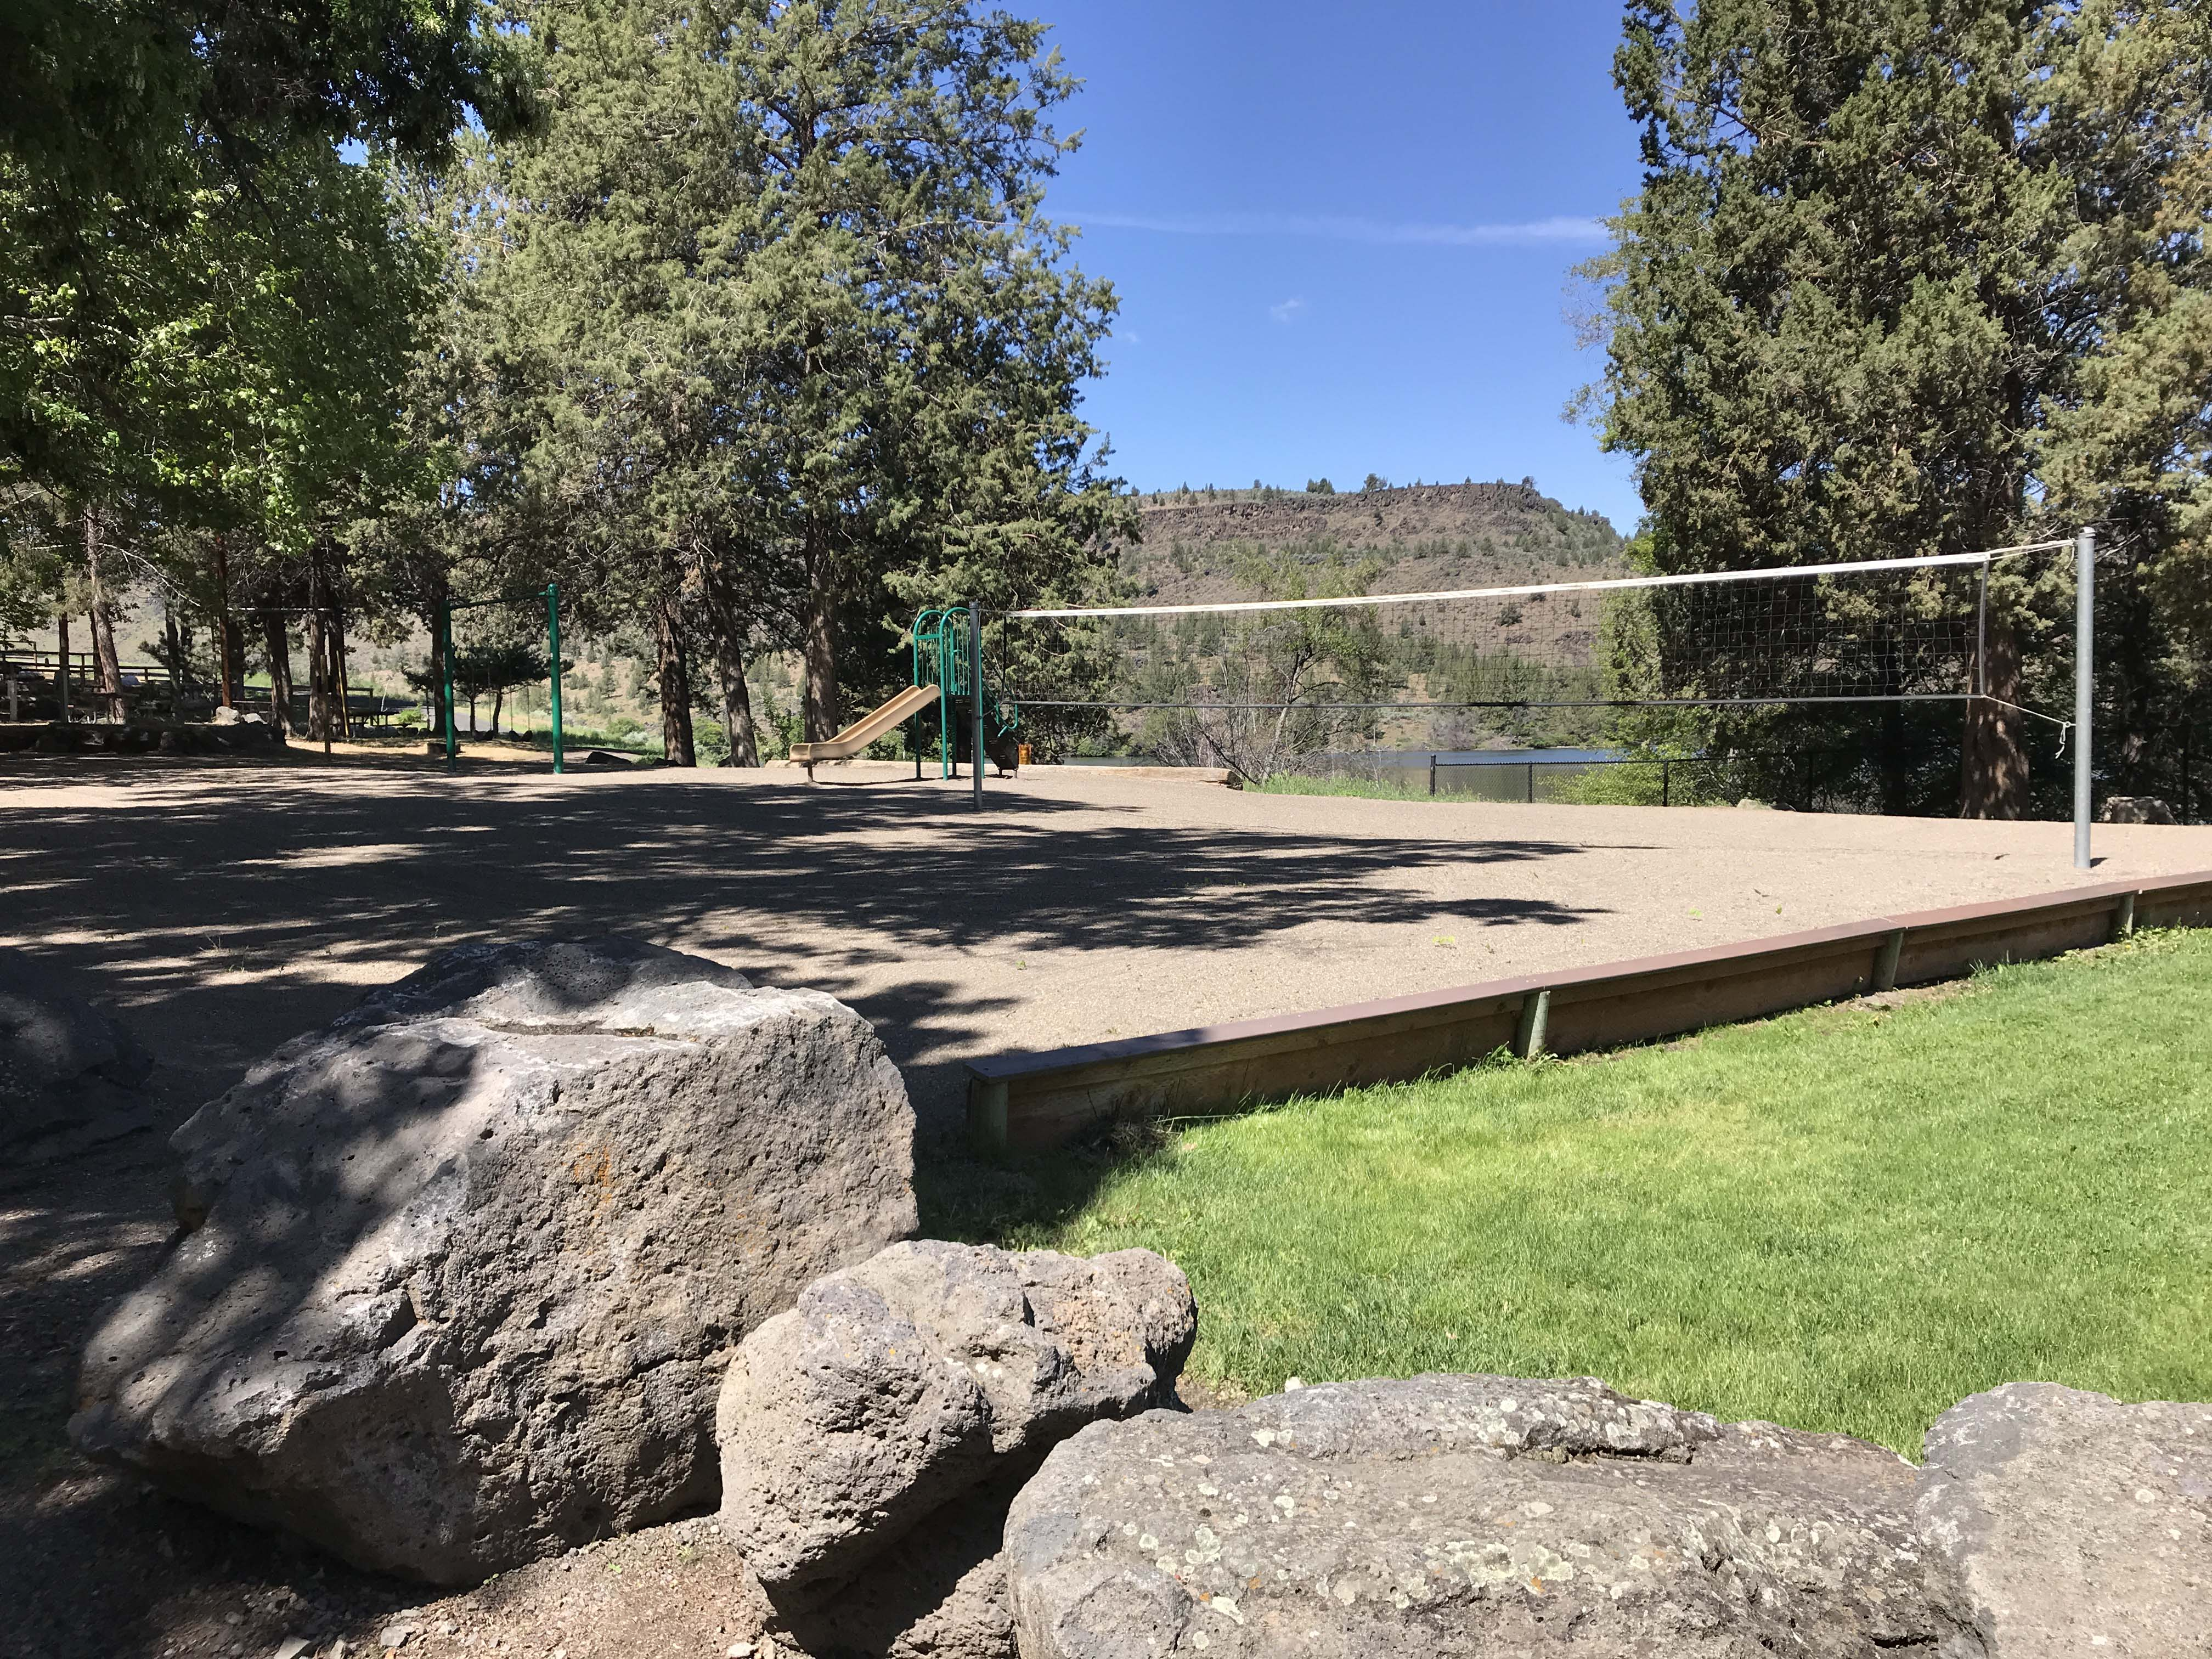 First Time at Pelton Park   Camper Chronicles